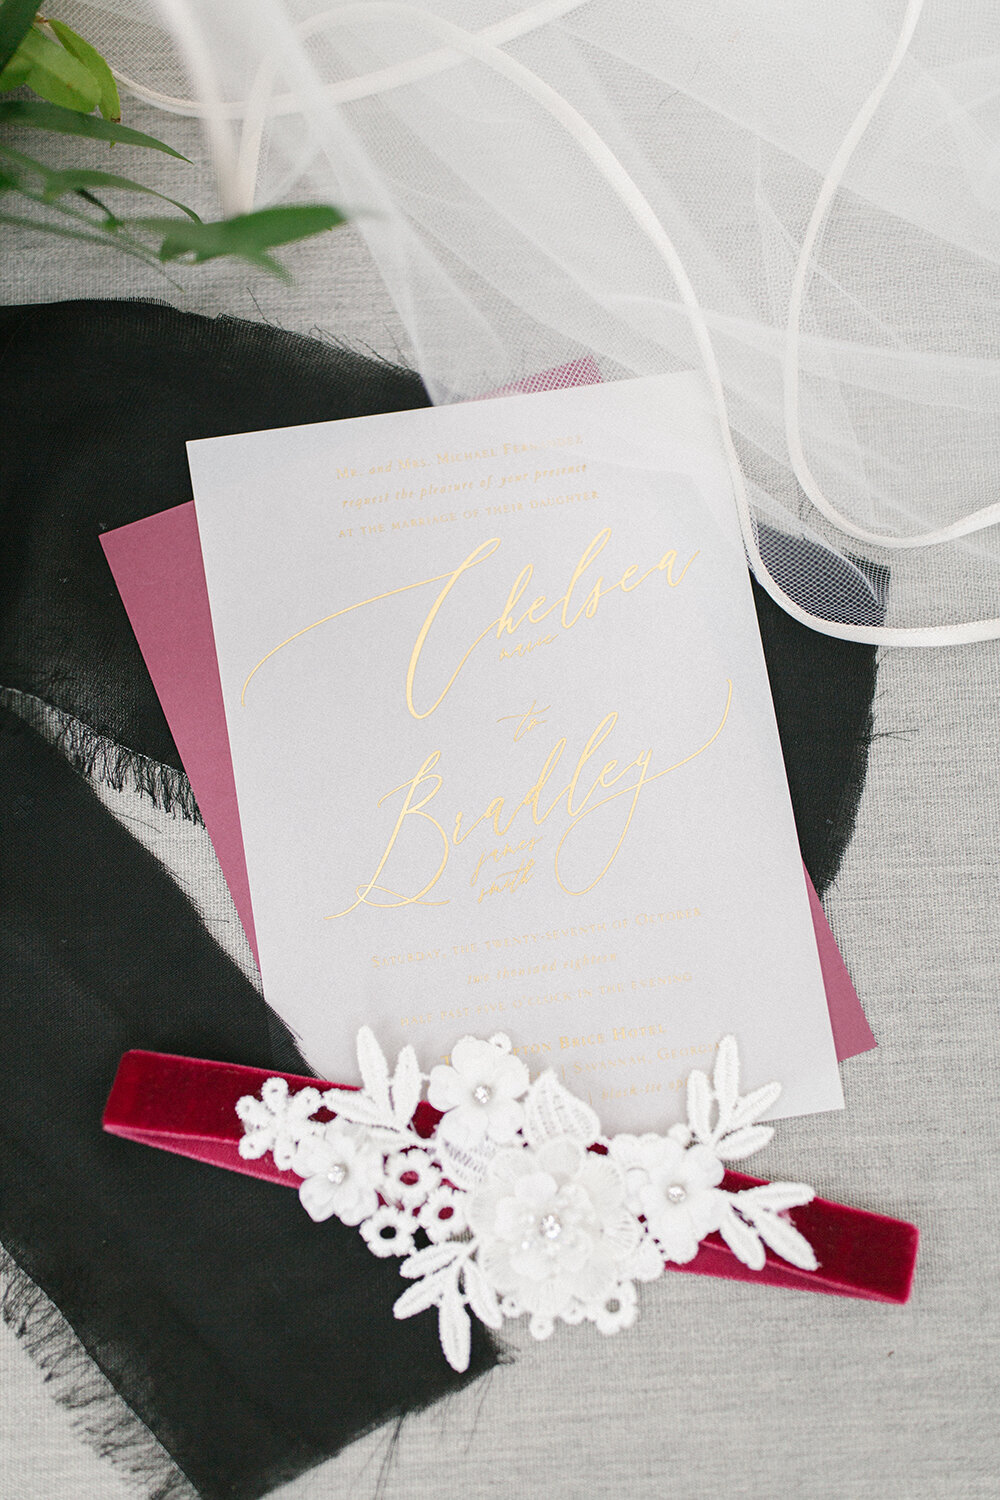 vellum burgundy gold foil wedding invitation savannah georgia monogram 13